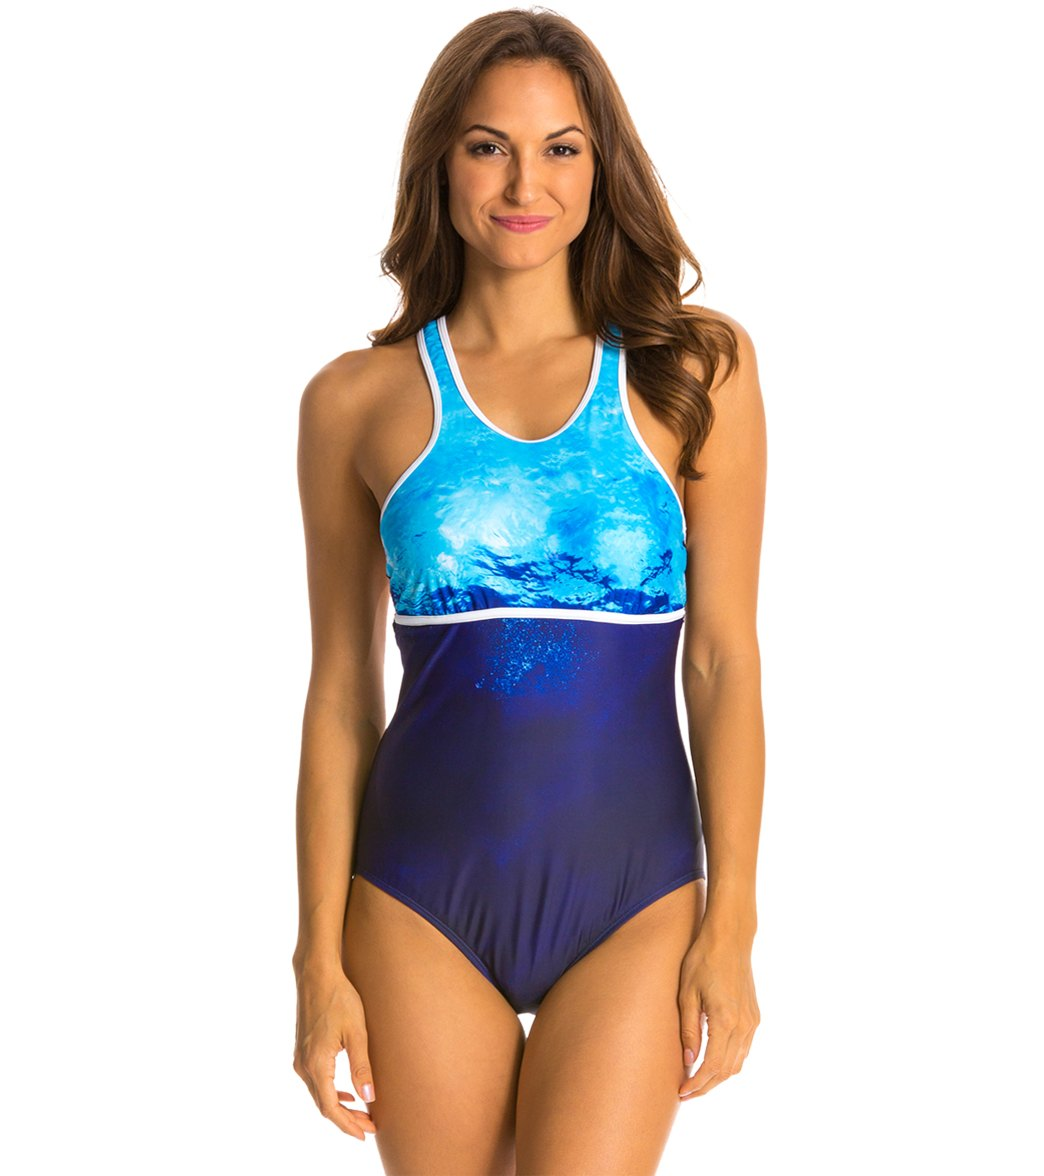 a50cc79bbdd7b Nautica H2O Active Into the Blue Racerback Soft Cup One Piece ...